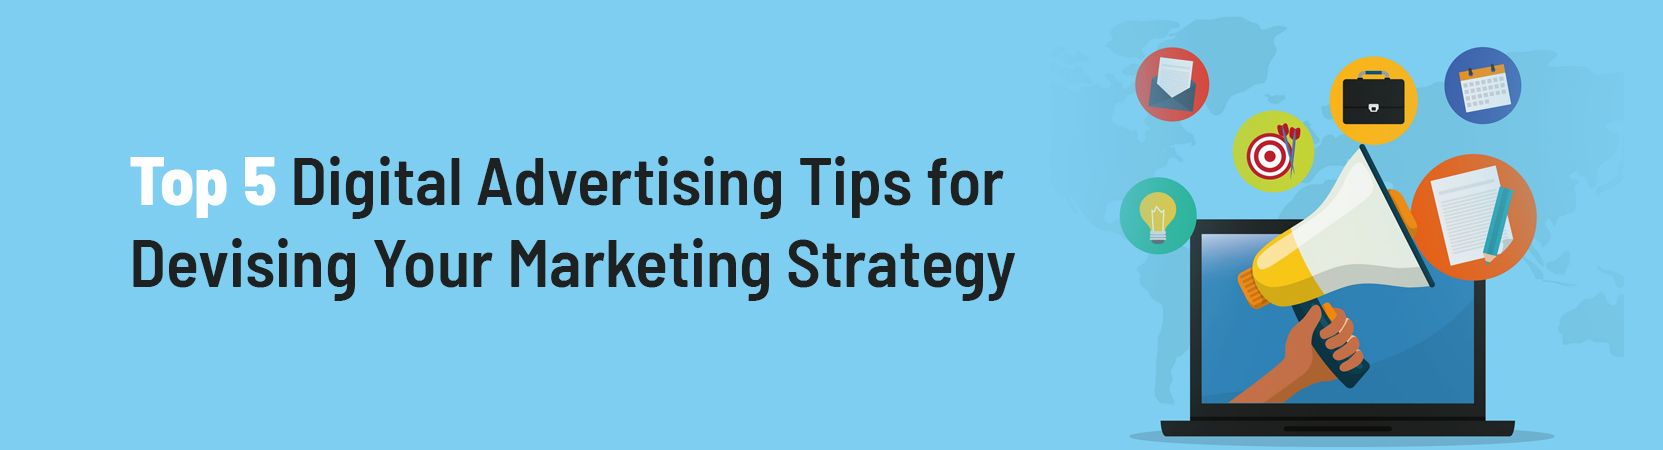 digital adverstising tips